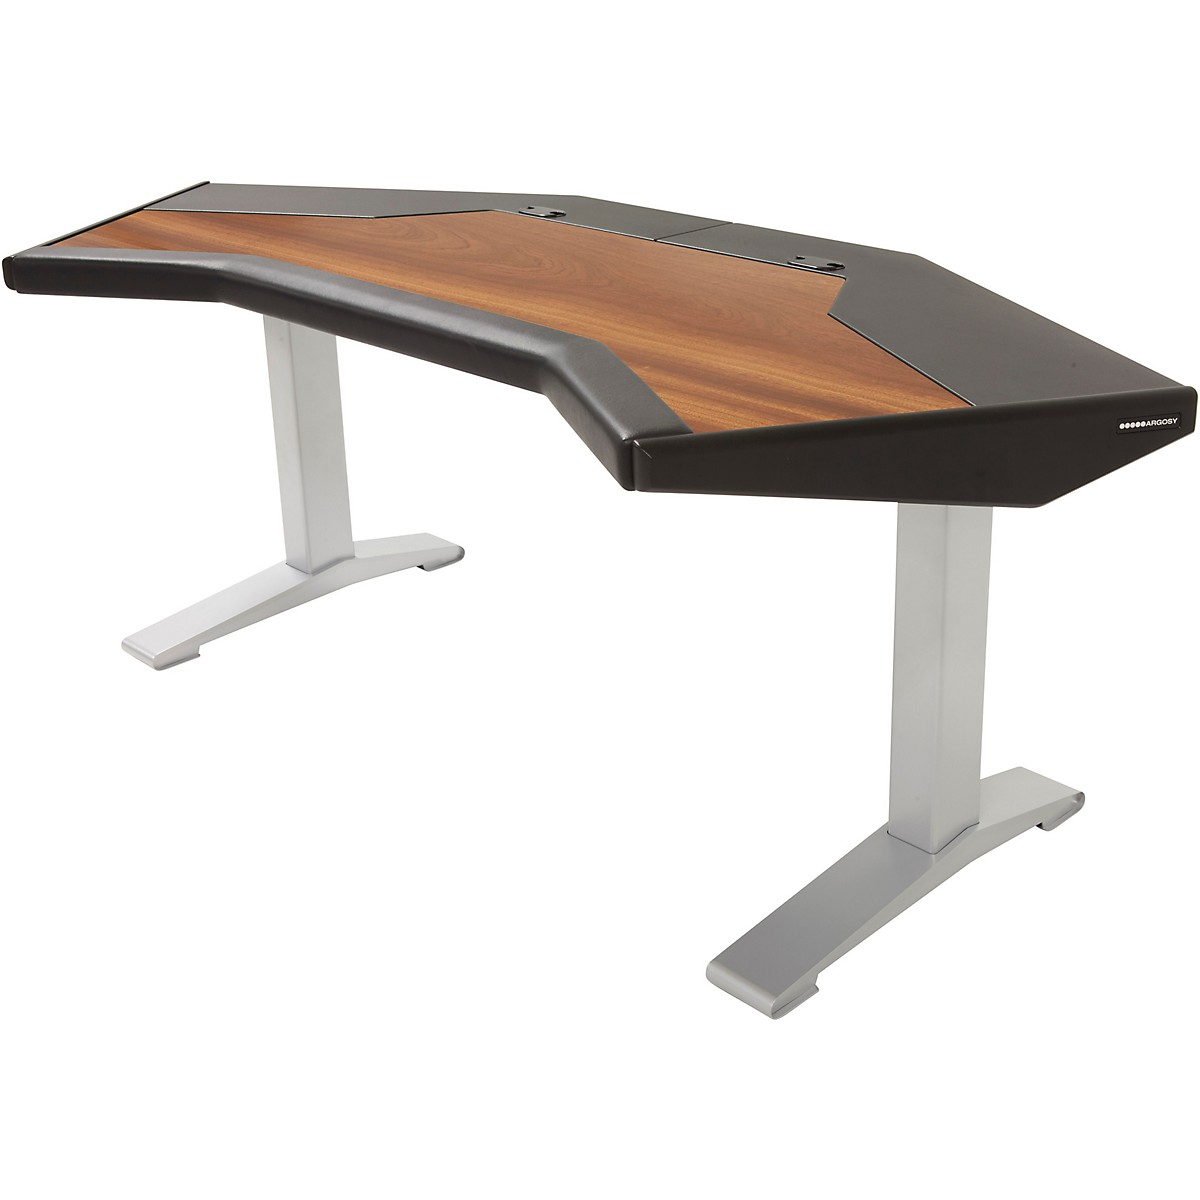 Argosy Halo G Desk with Black End Panels, Mahogany Surface, and Silver Legs